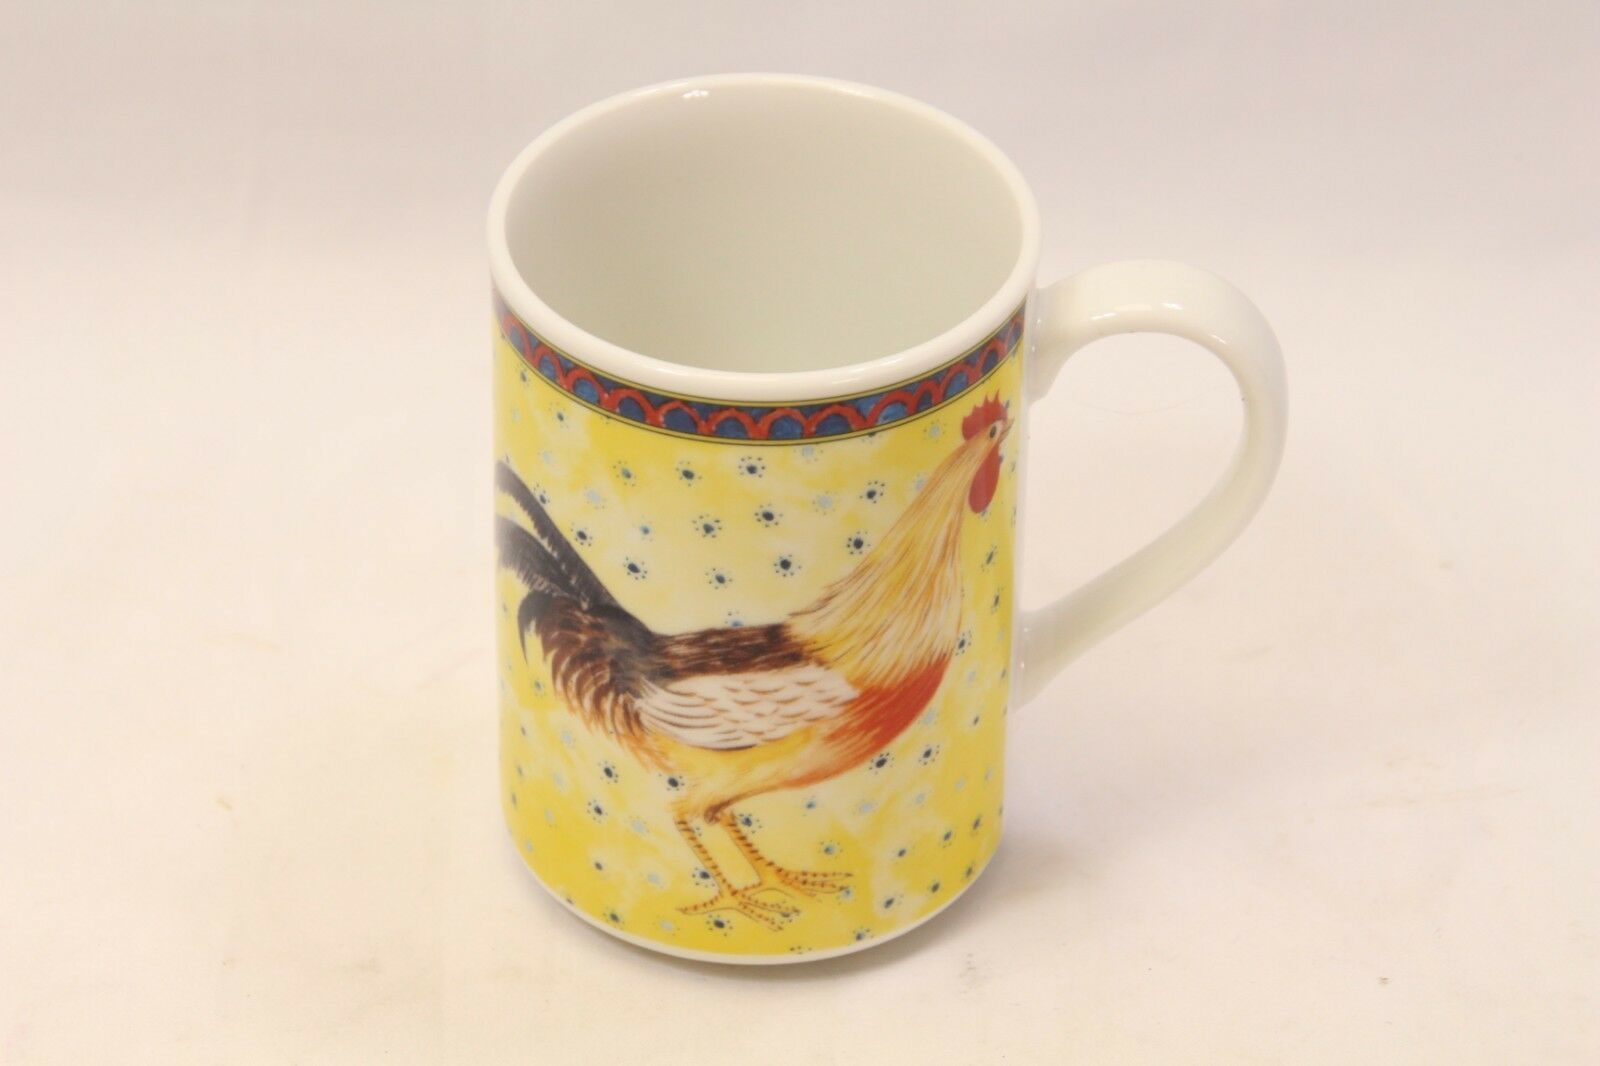 American Atelier Petite Provence Rooster Mugs Set of 12 image 2